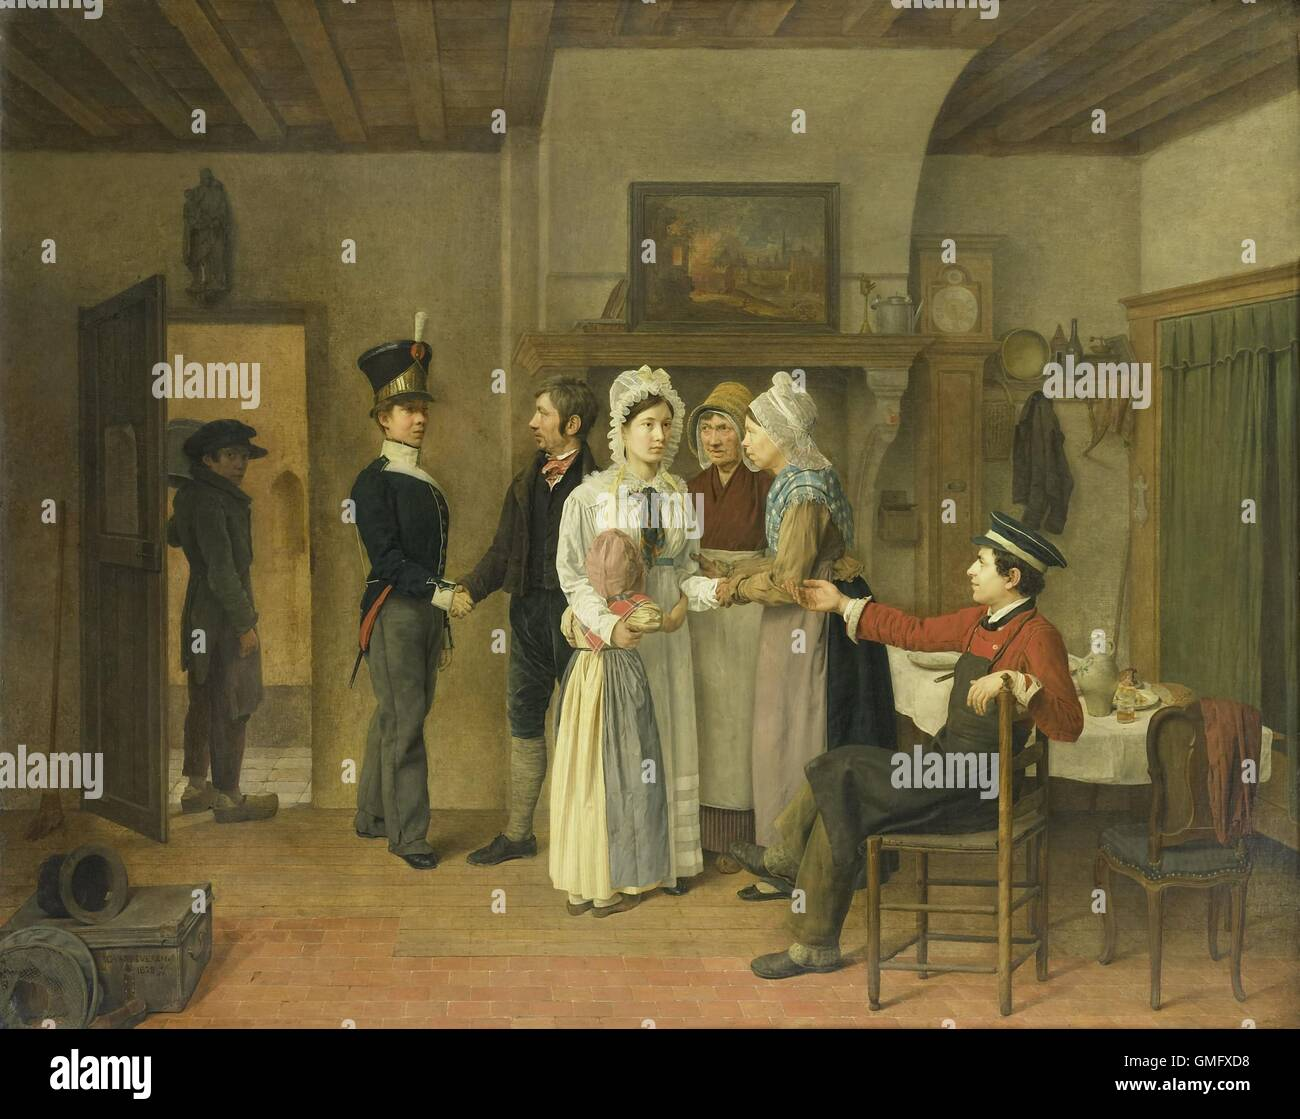 The Soldier's Farewell, by Charles van Beveren, 1828, Dutch painting